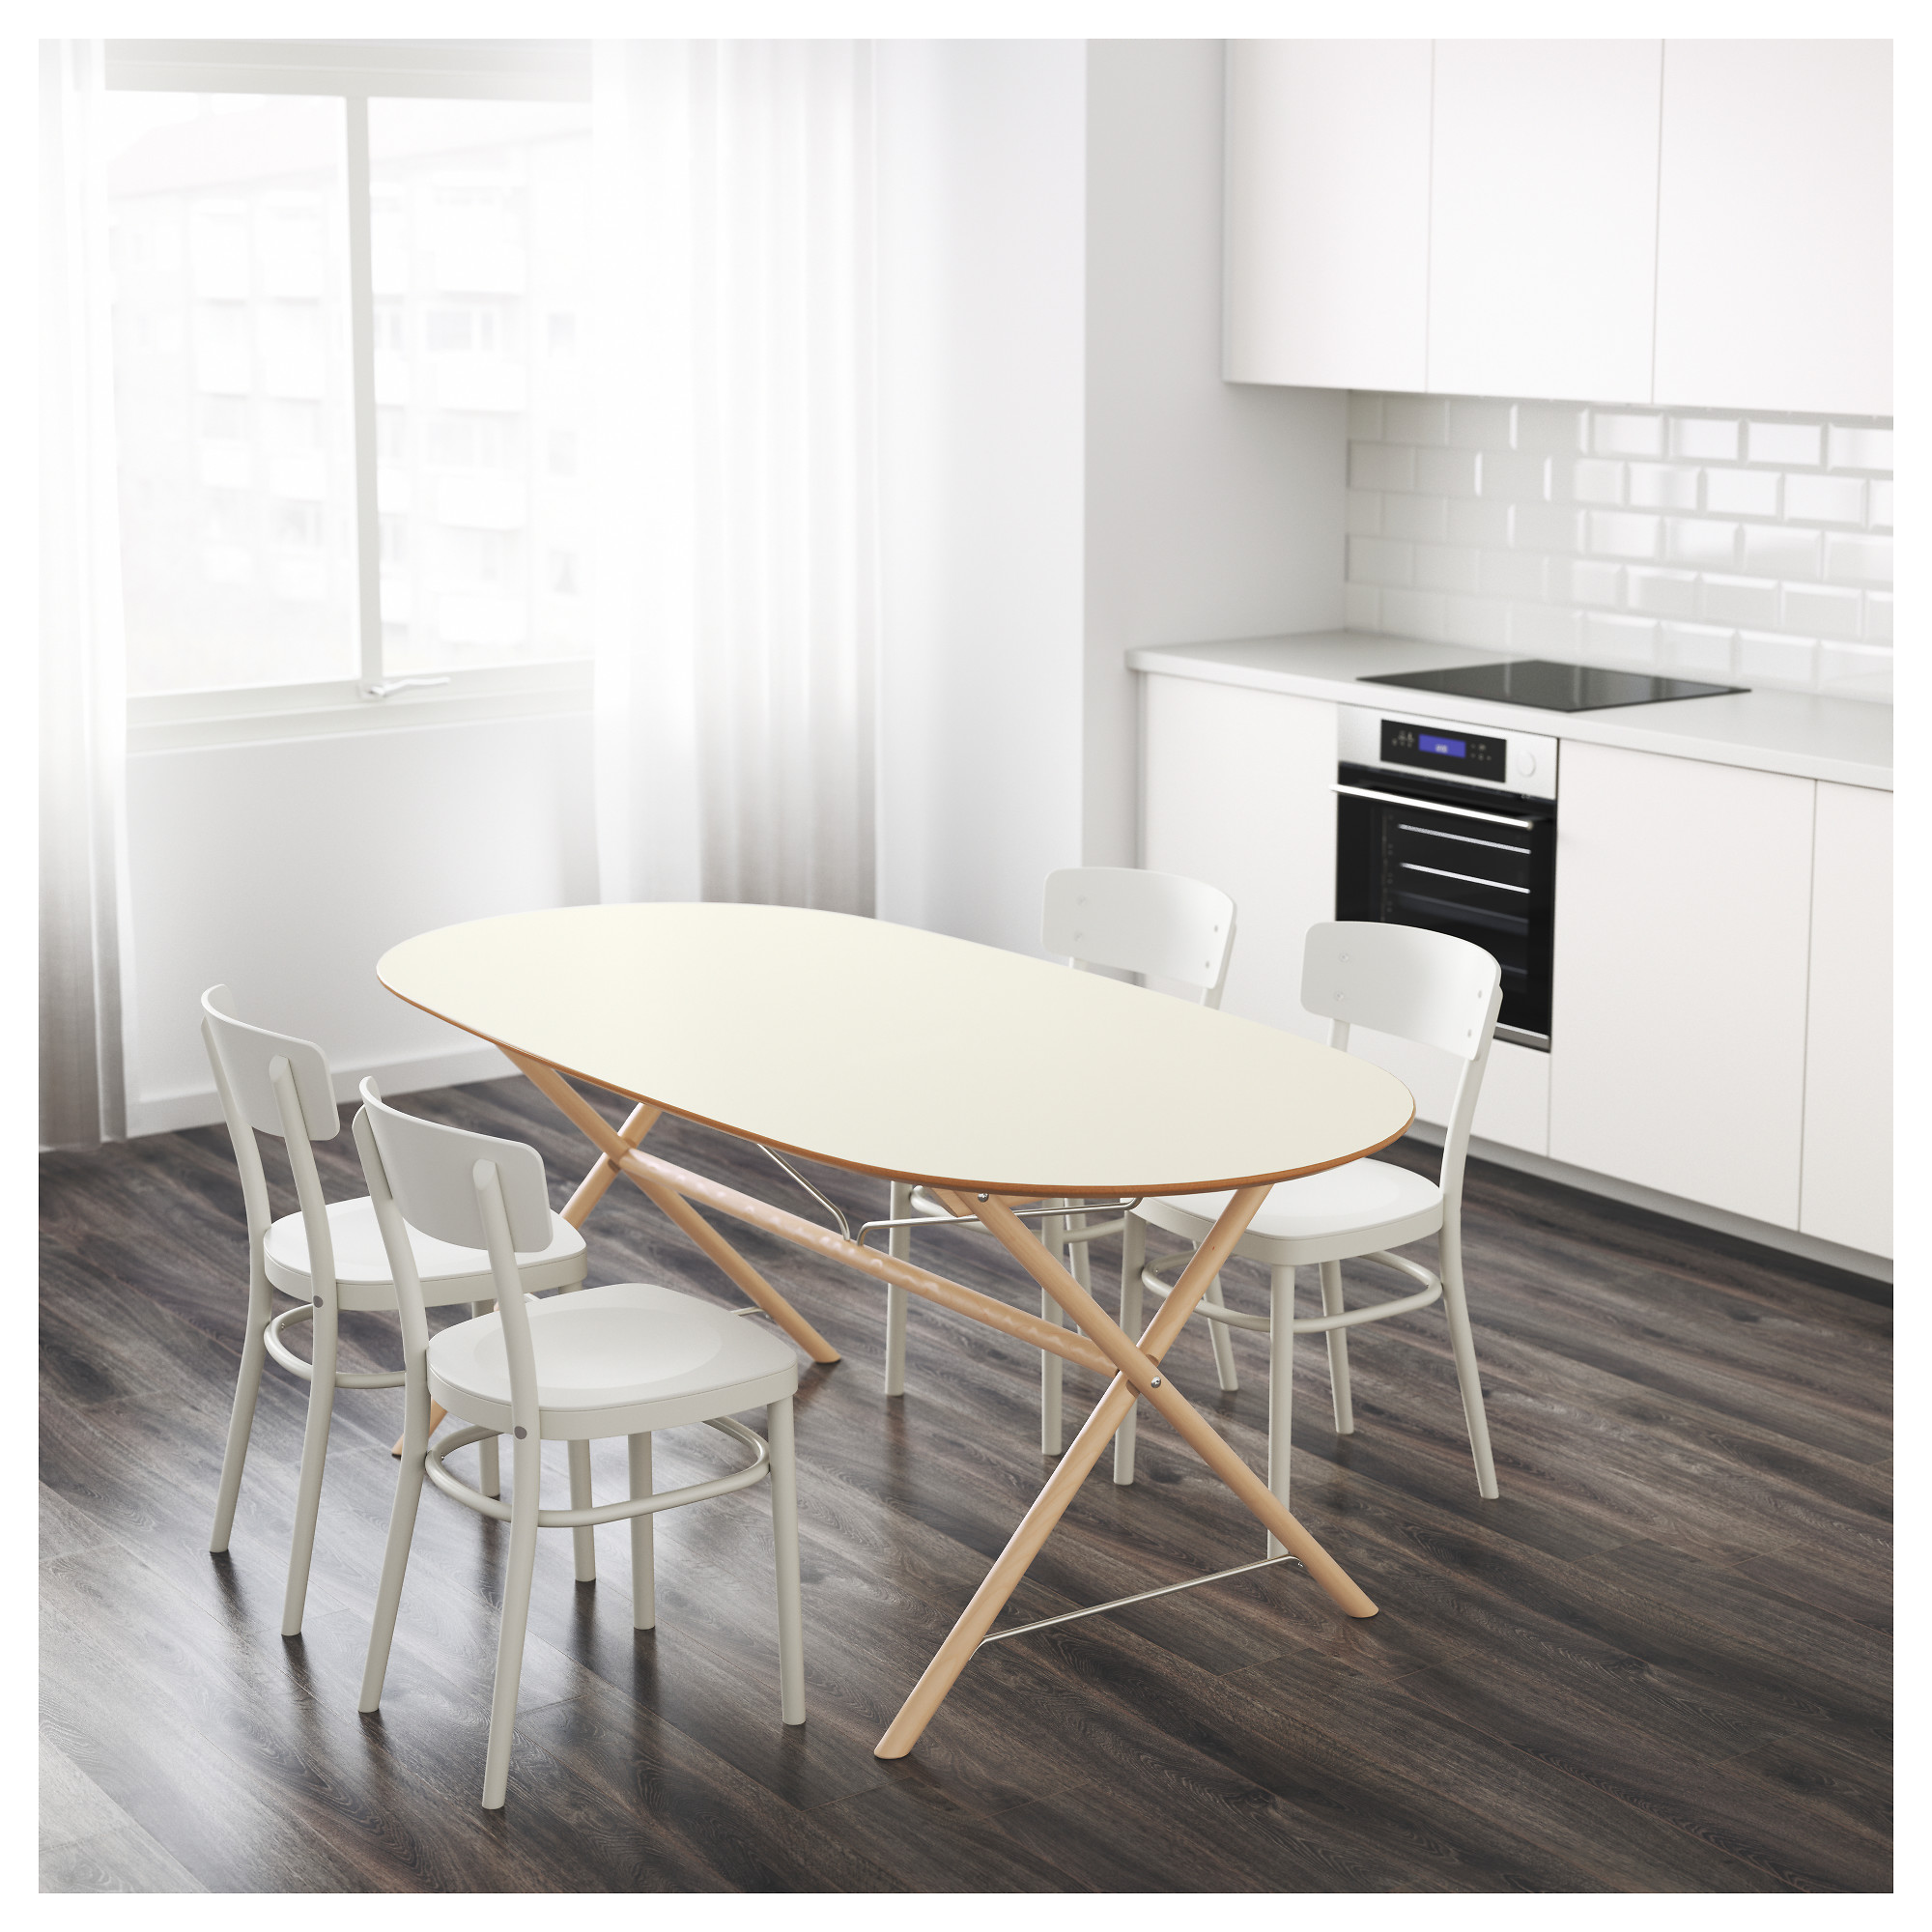 Table blanc laqu ikea awesome table basse de salon ikea table basse salon ik - Table basse de salon ikea ...